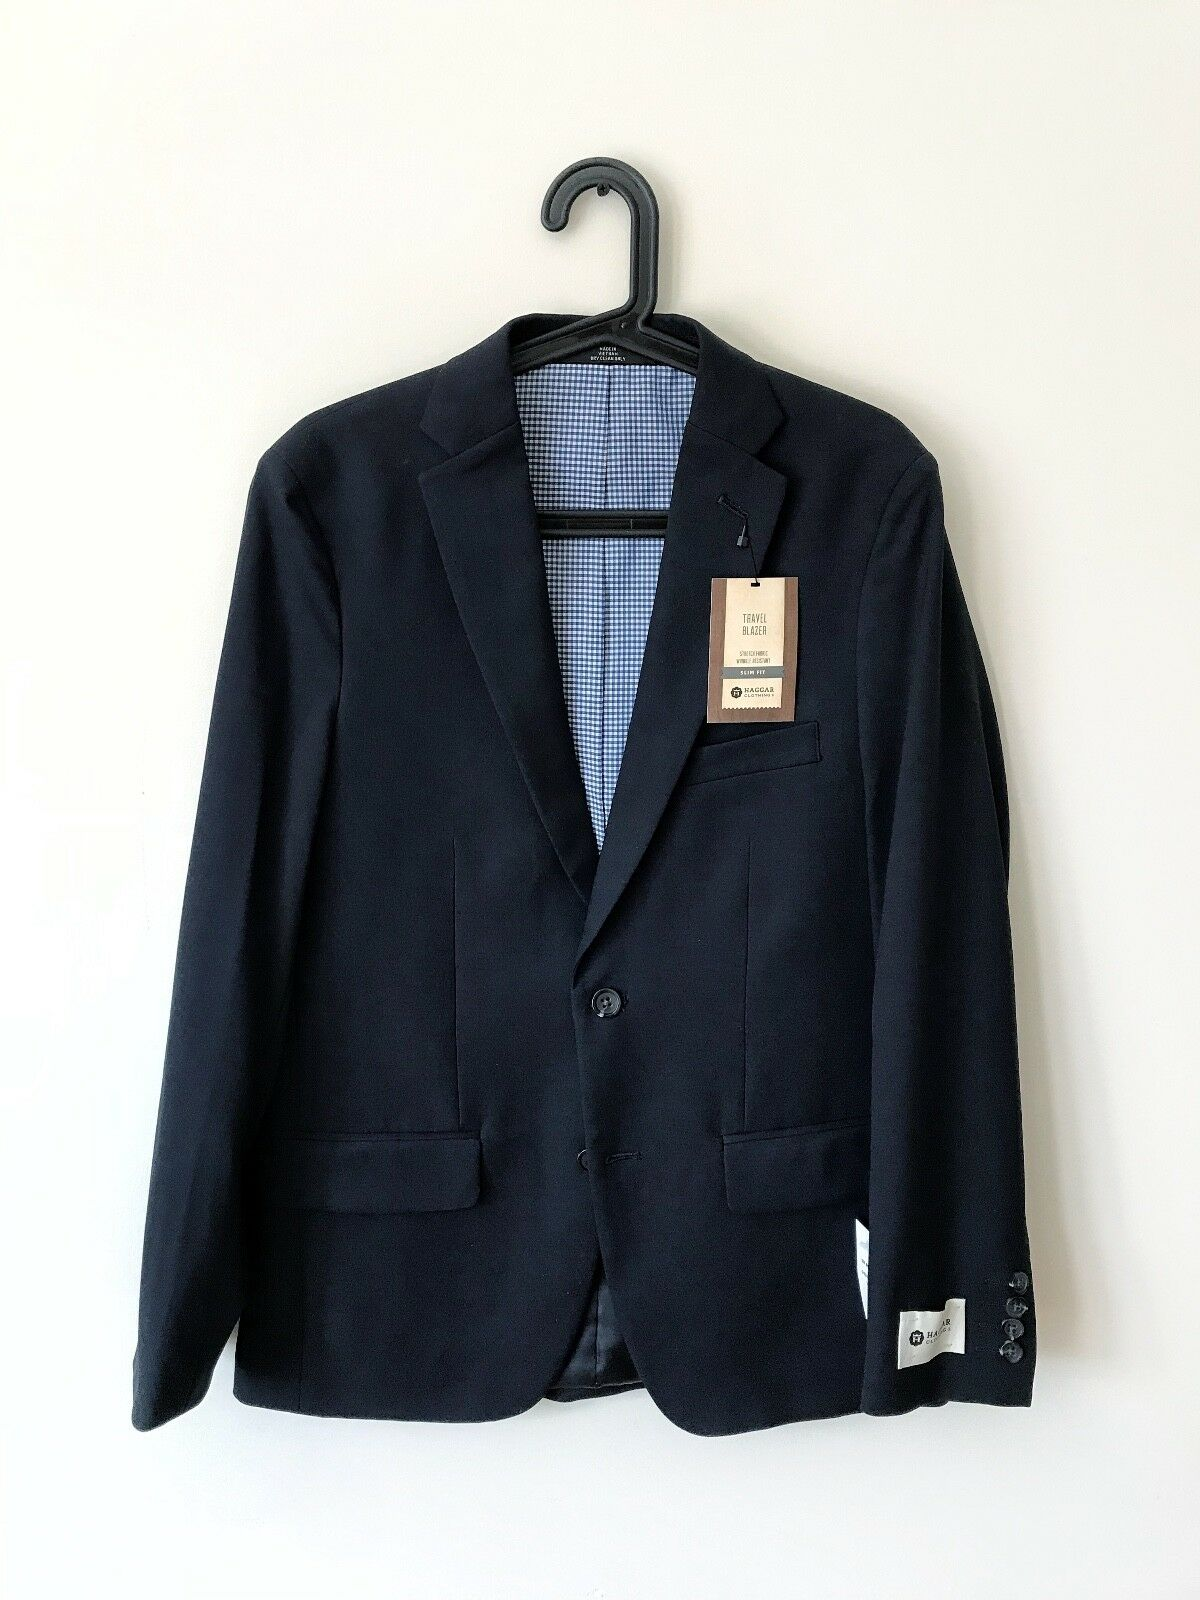 Haggar bluee Navy Travel Blazer New With Tags Size 36 Regular